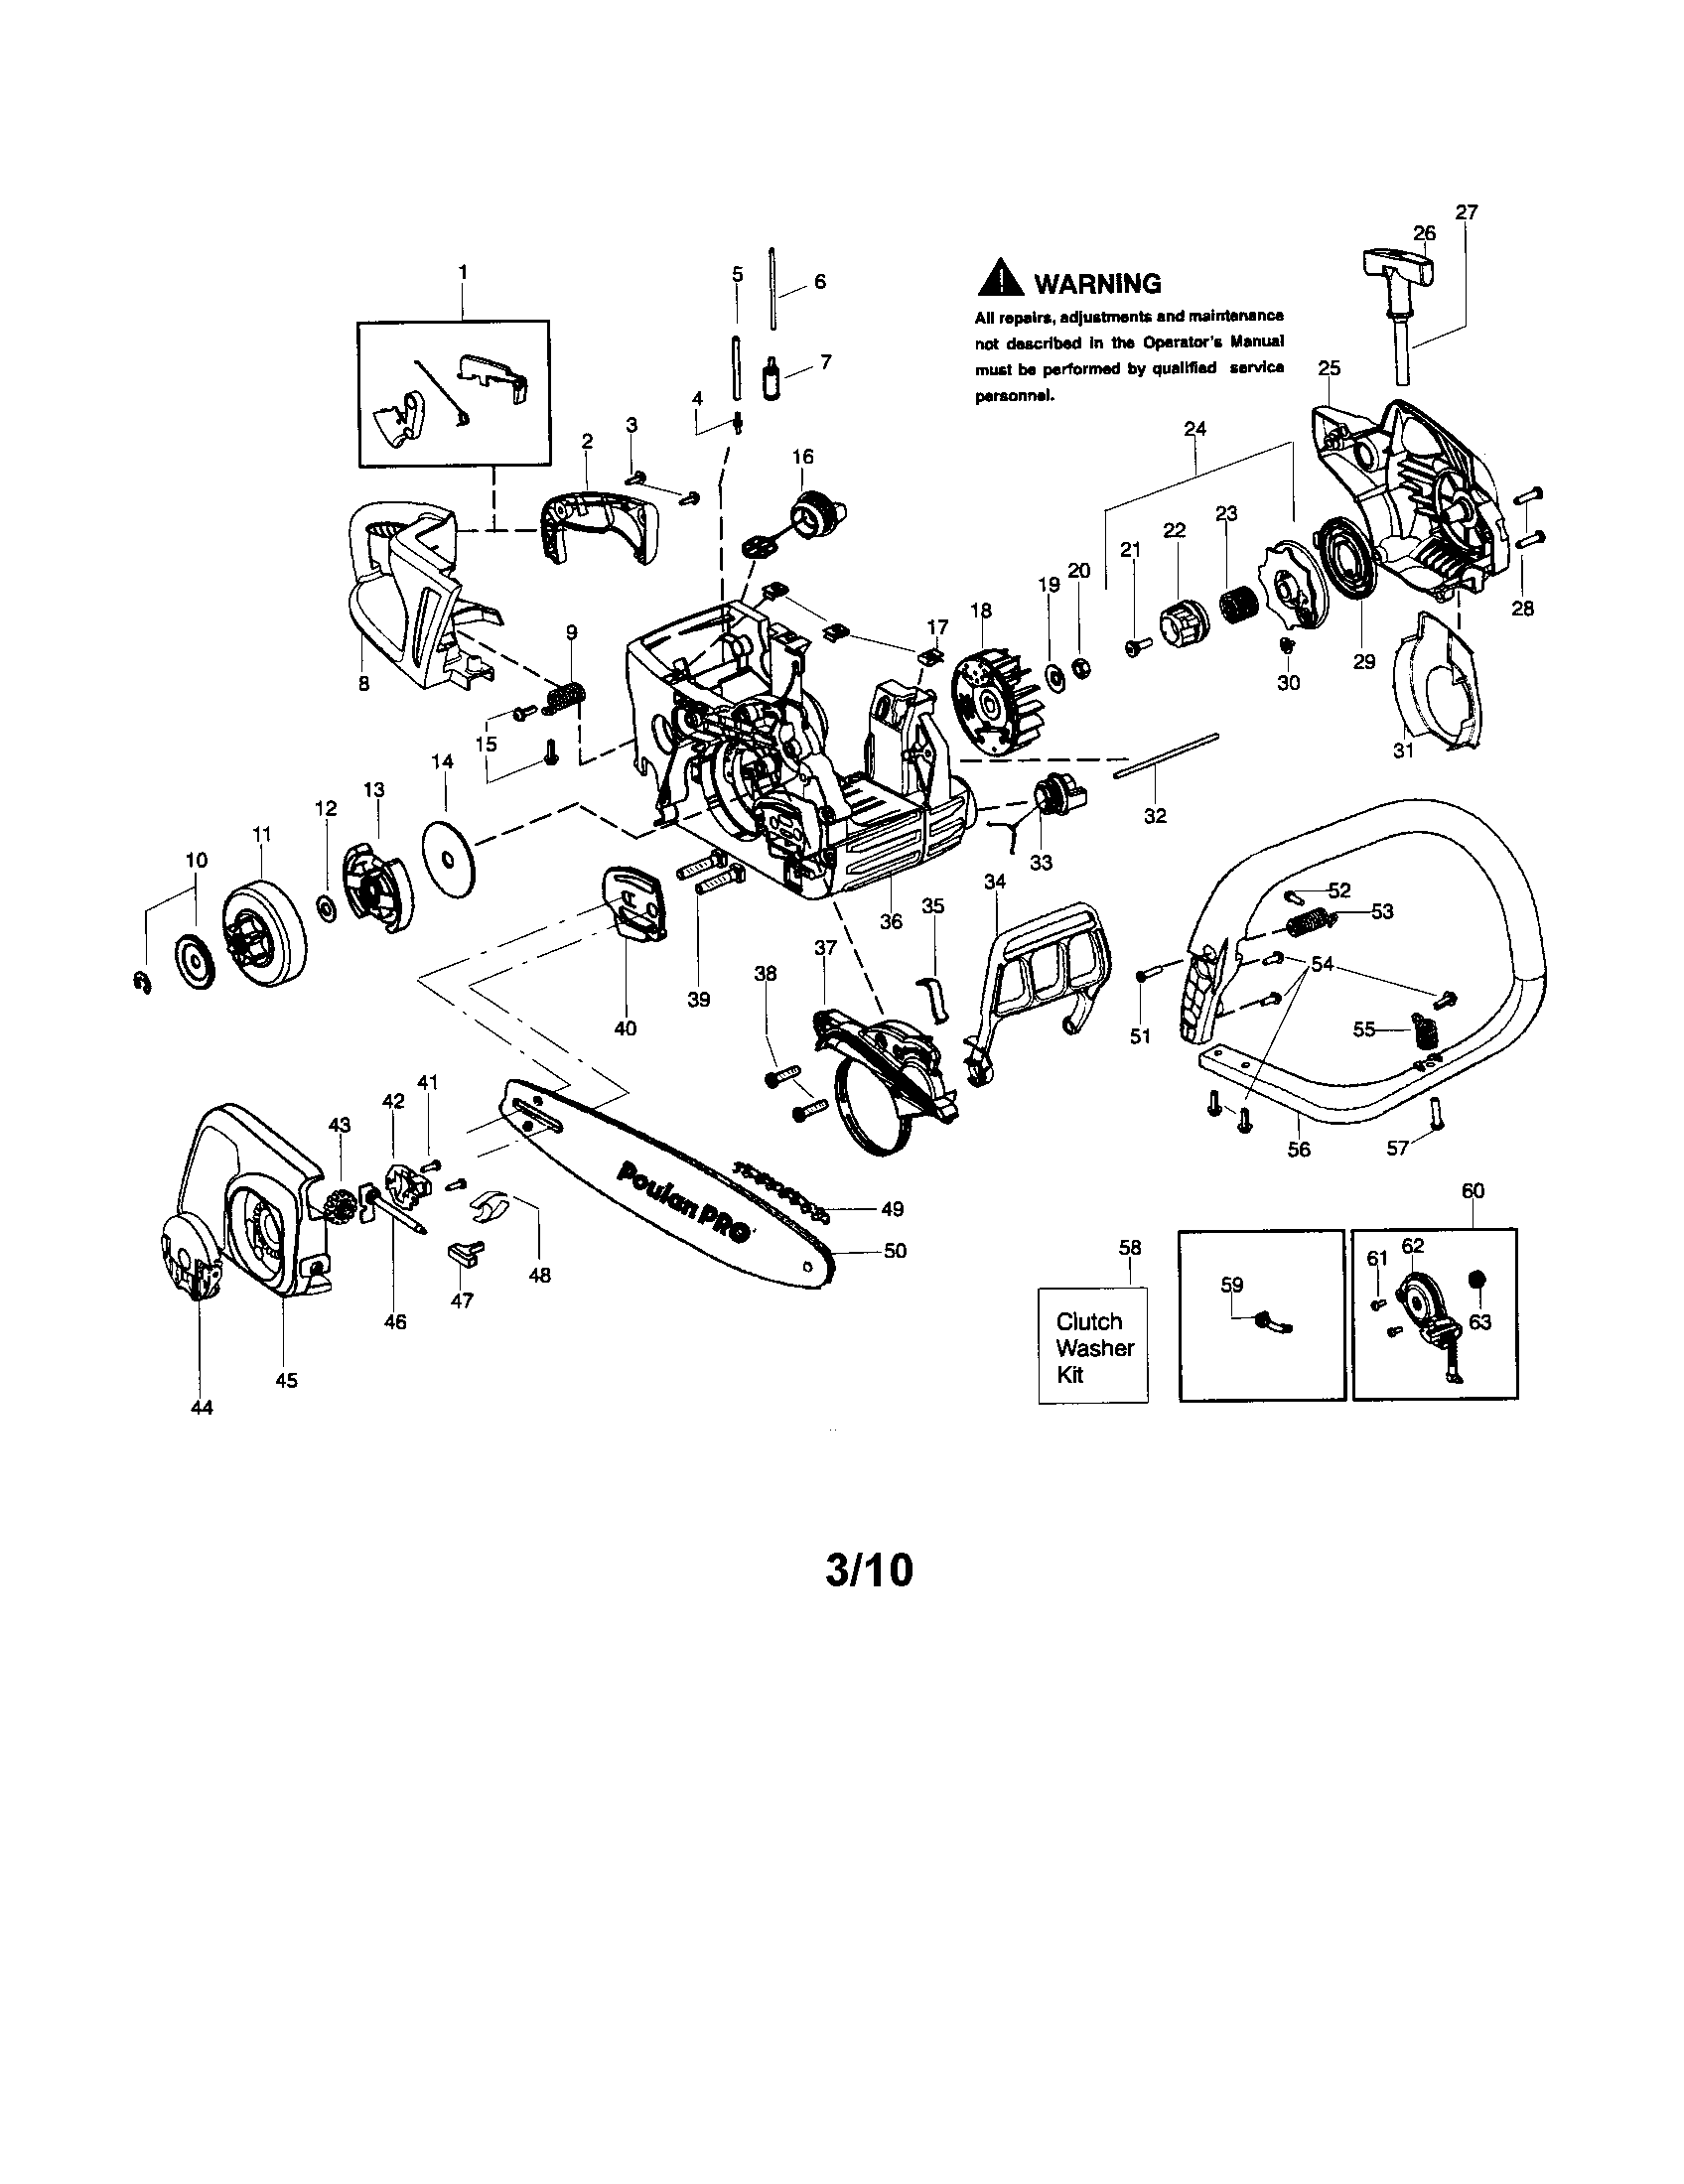 handle chain and guide bar diagram and parts list for poulan chainsaw wiring diagram week [ 1696 x 2200 Pixel ]